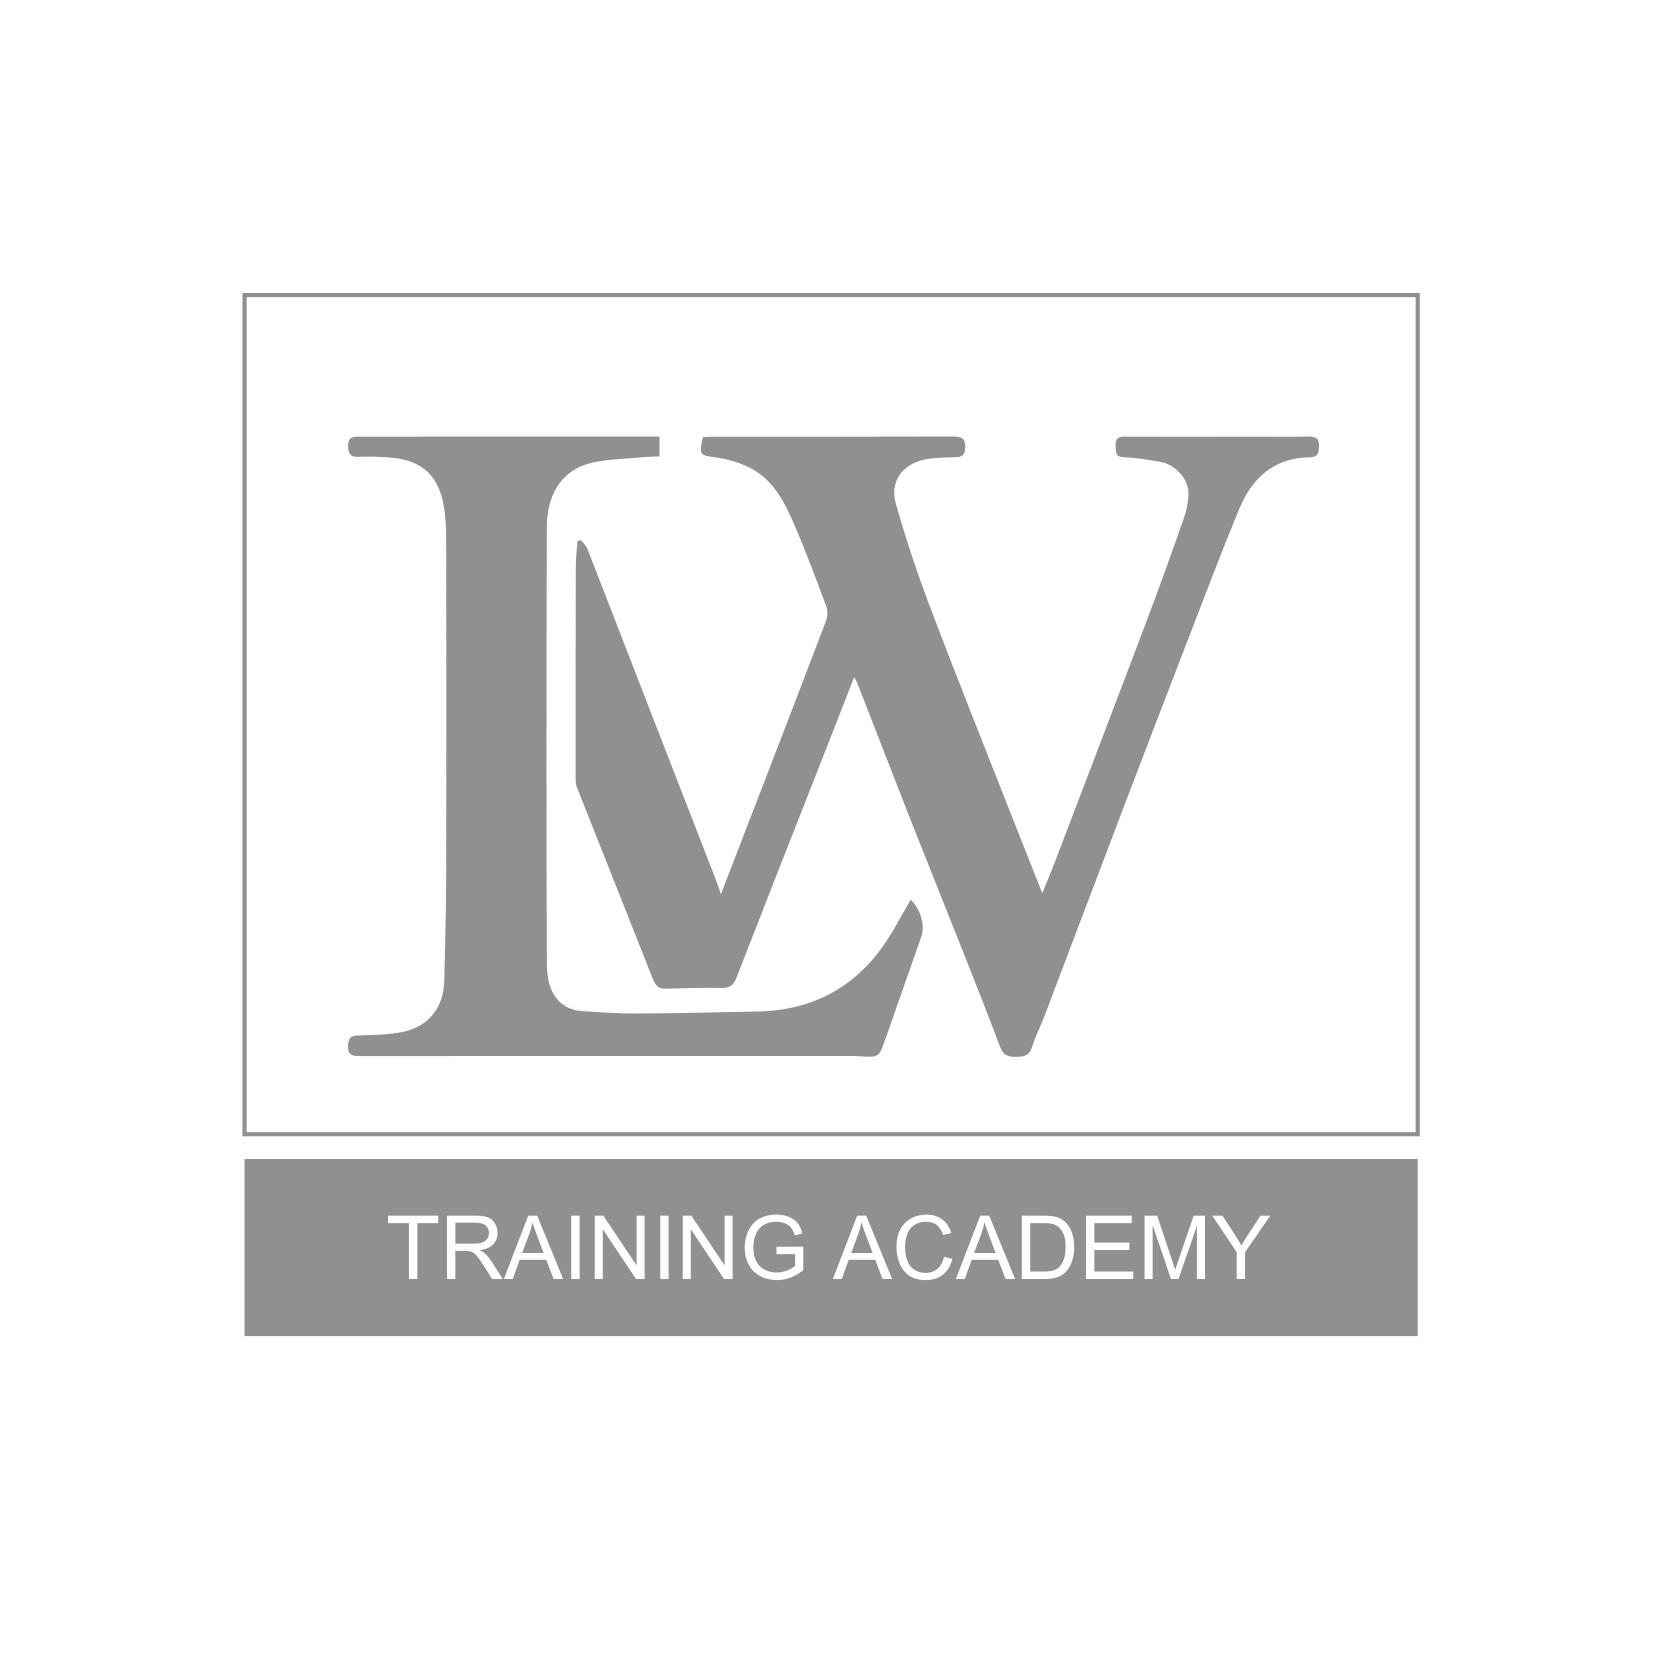 LW TRAINING NEW LOGO